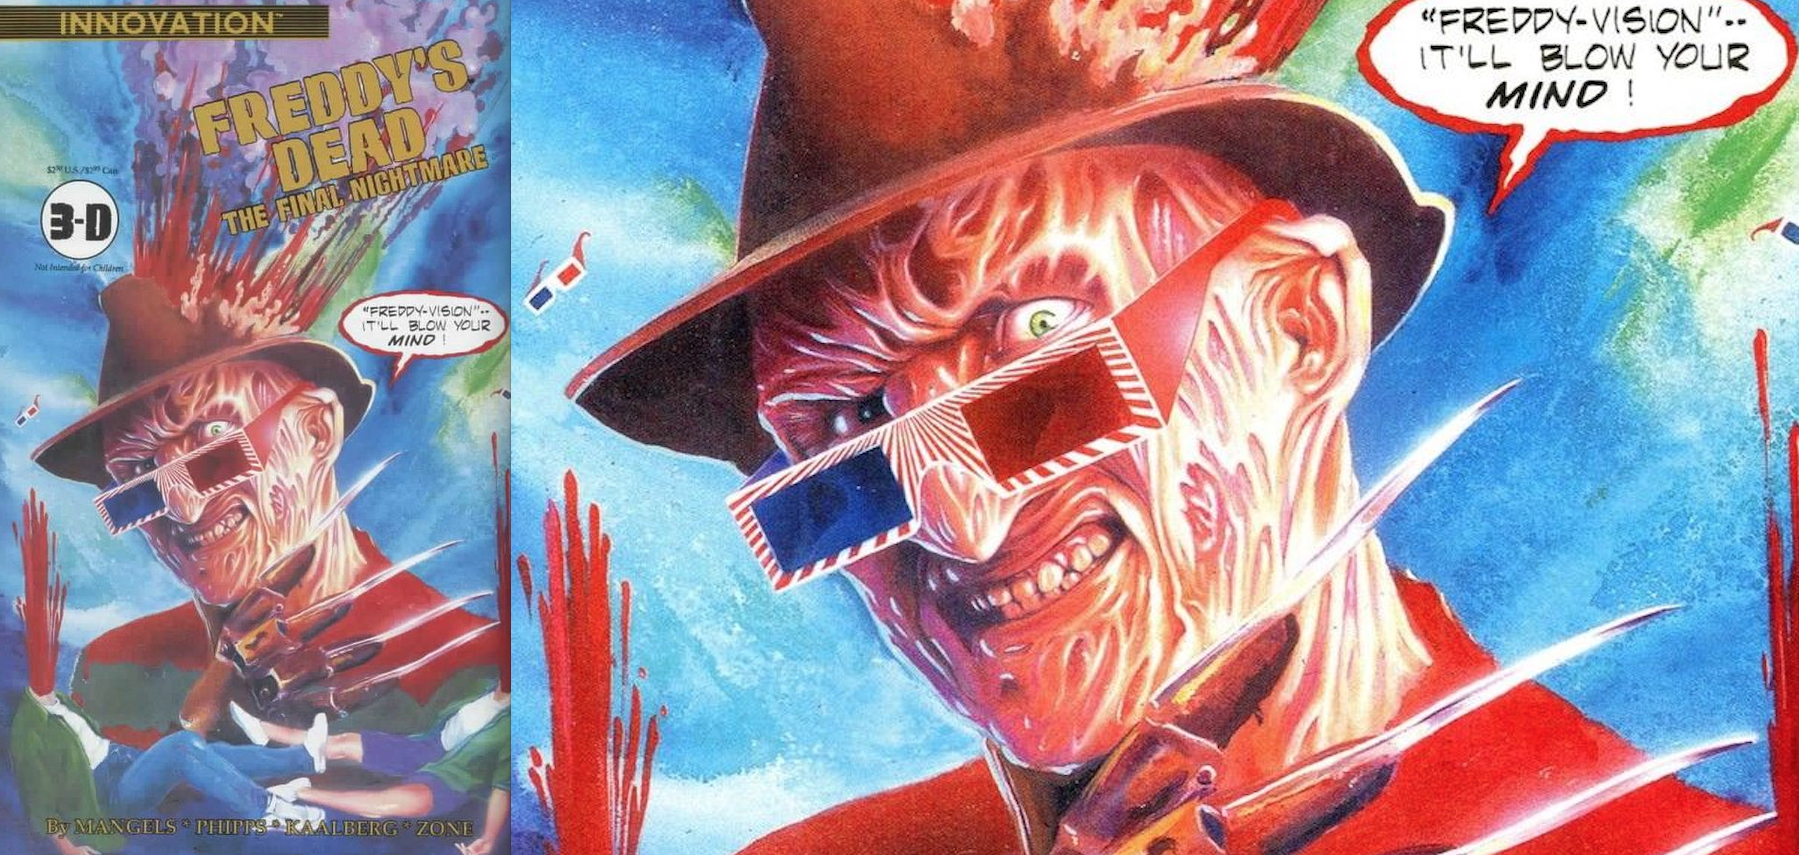 Freddy's Dead Issue 3 : 3-D Edition Cover Art